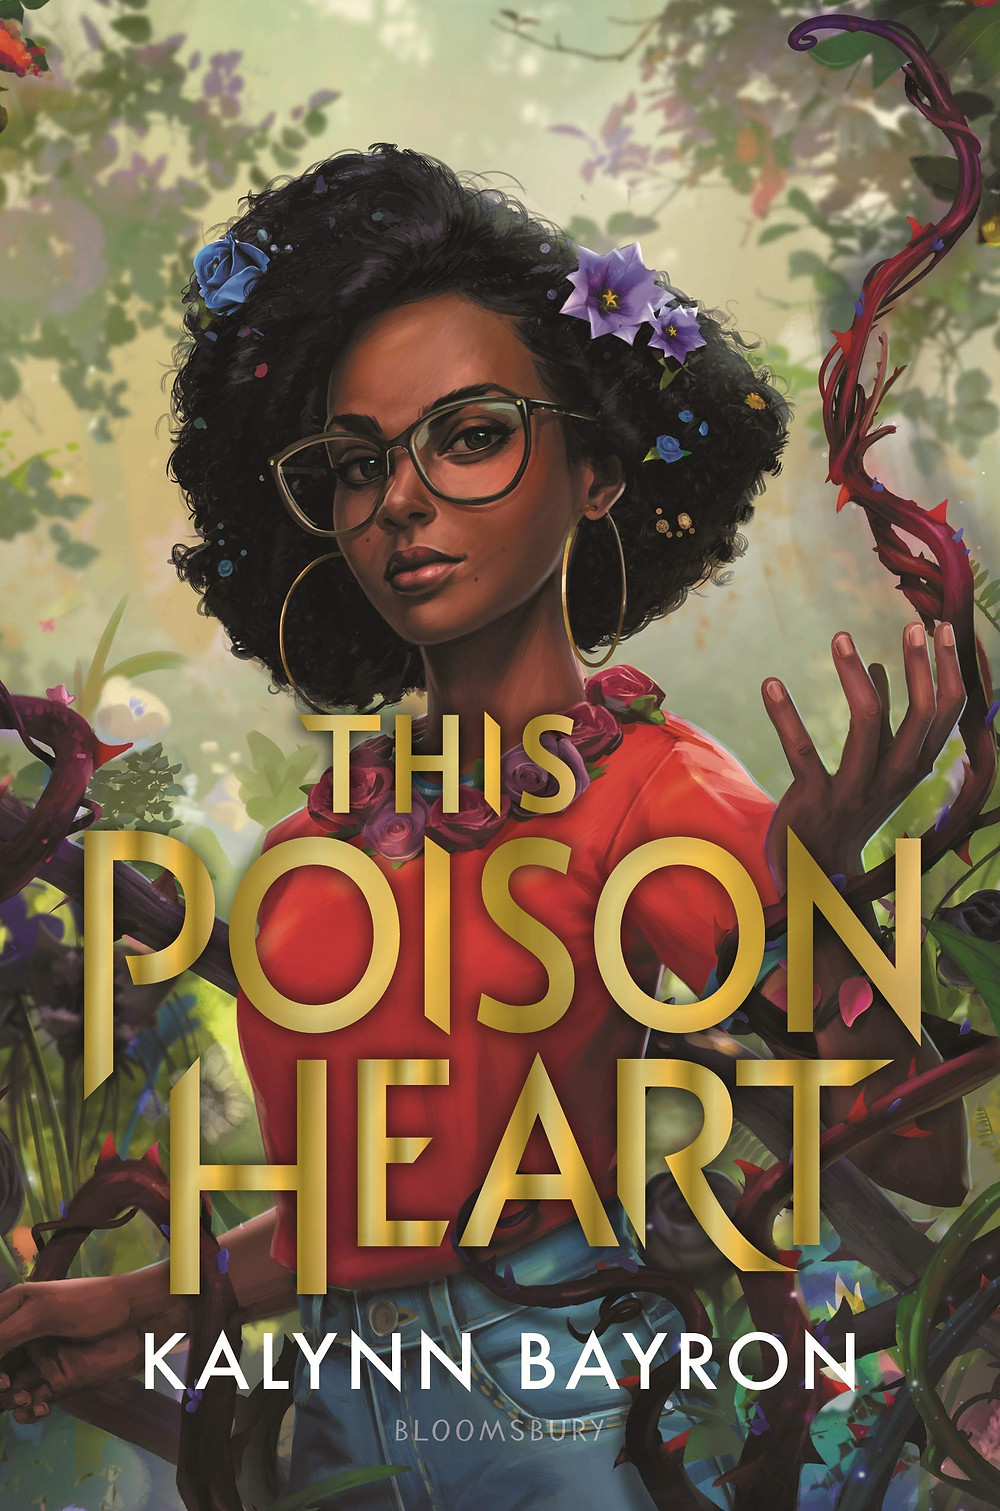 Book cover of This Poison Heart by Kalynn Bayron.